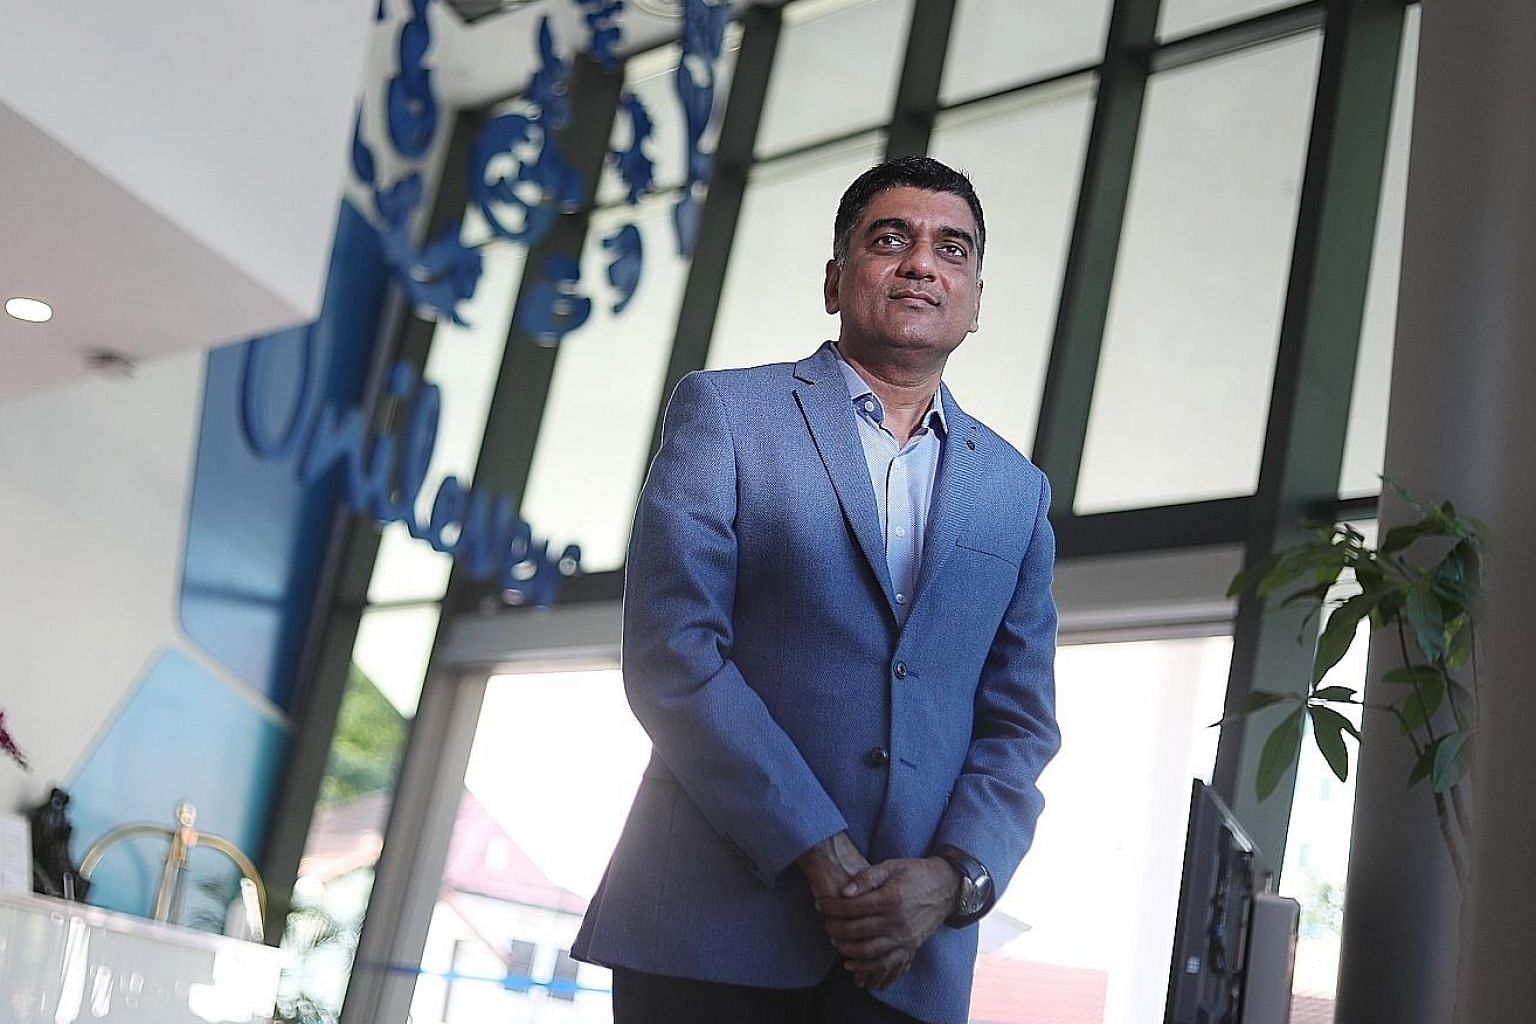 """Unilever International's Umesh Shah says that in the New Age, everything can be done in a very agile way, whether it is marketing, sales or talent management or even all the other activities. In the new era, he says, """"resources are no longer a constr"""